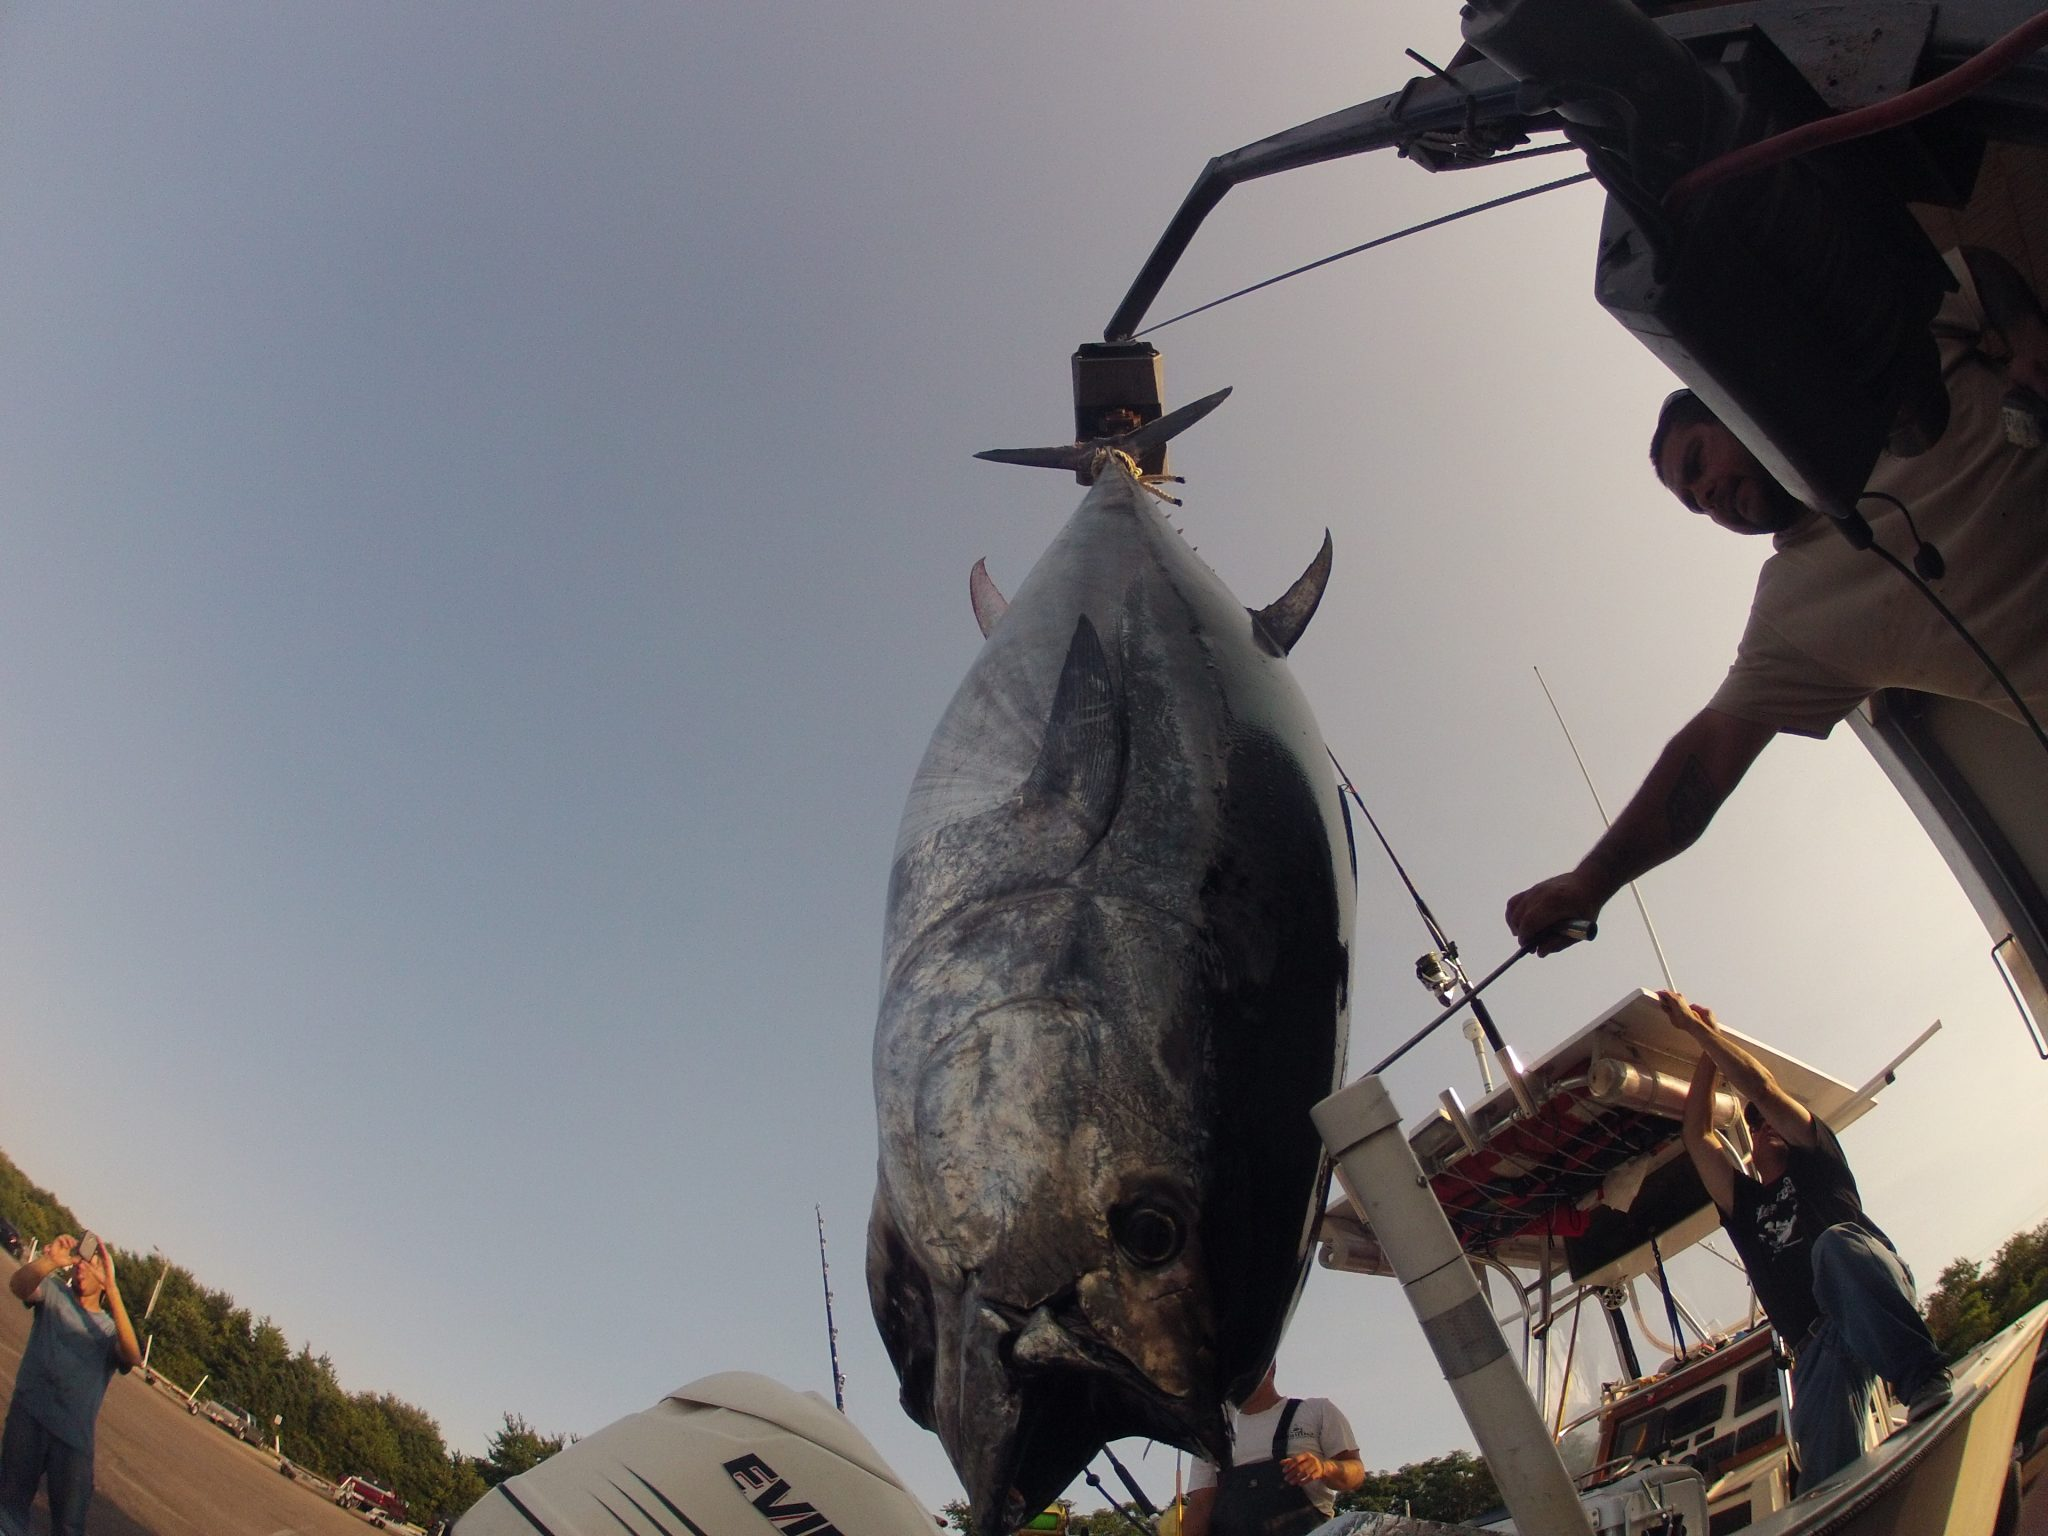 Cape cod bay giant tuna fishing during october for Closest fishing store